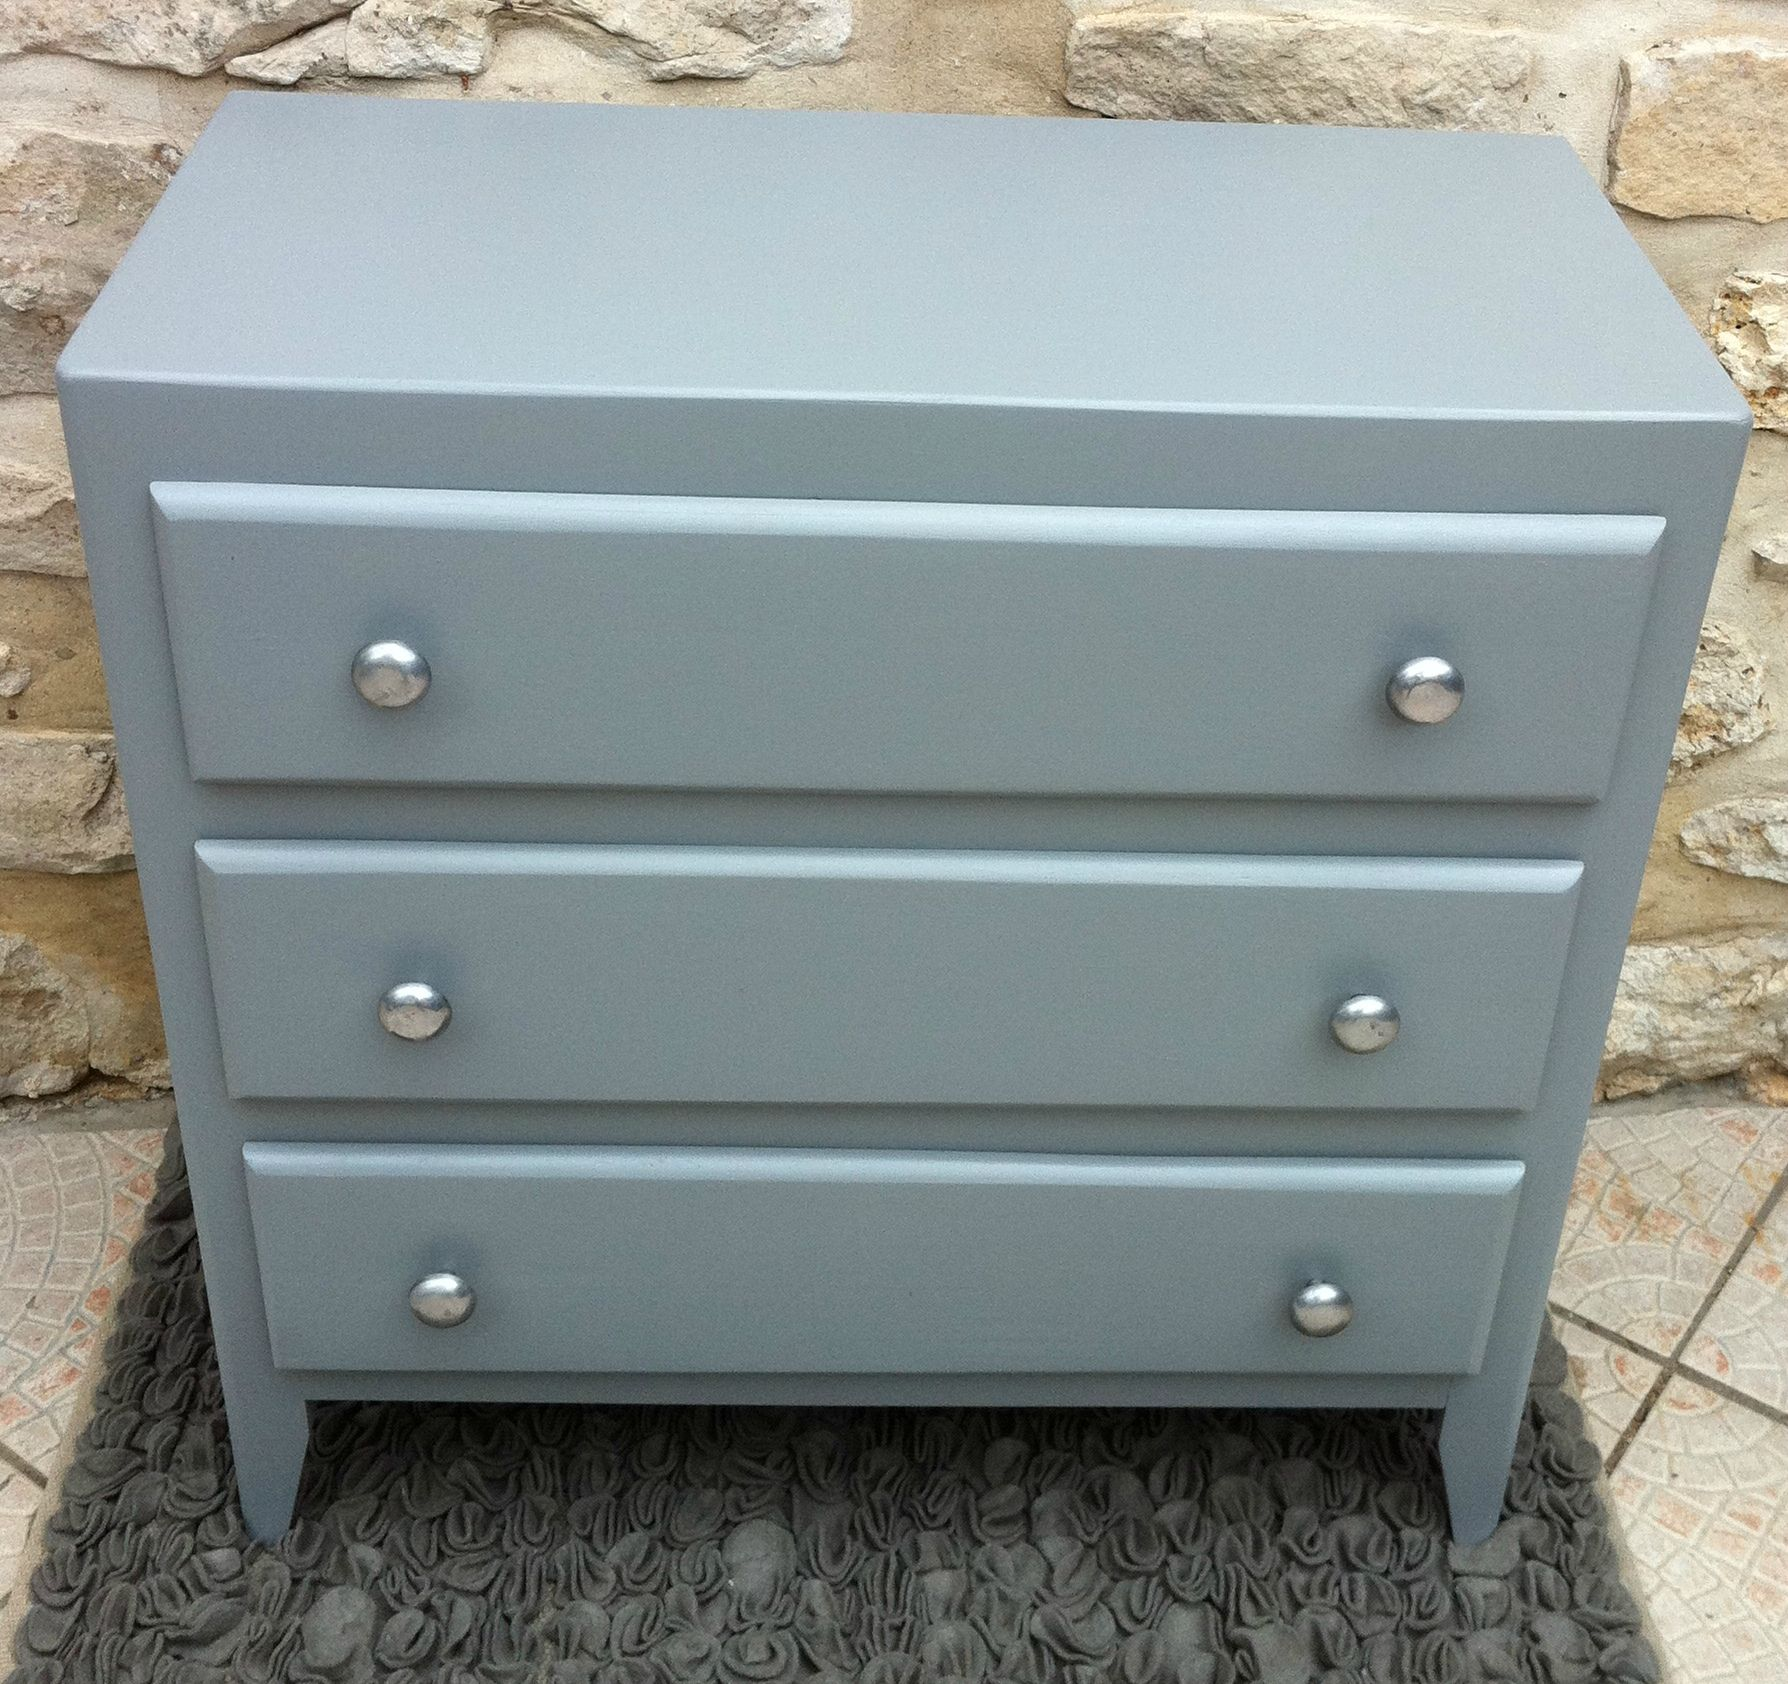 Ancienne commode 3 tiroirs revisitee en gris f b meuble for Meuble repeint en gris